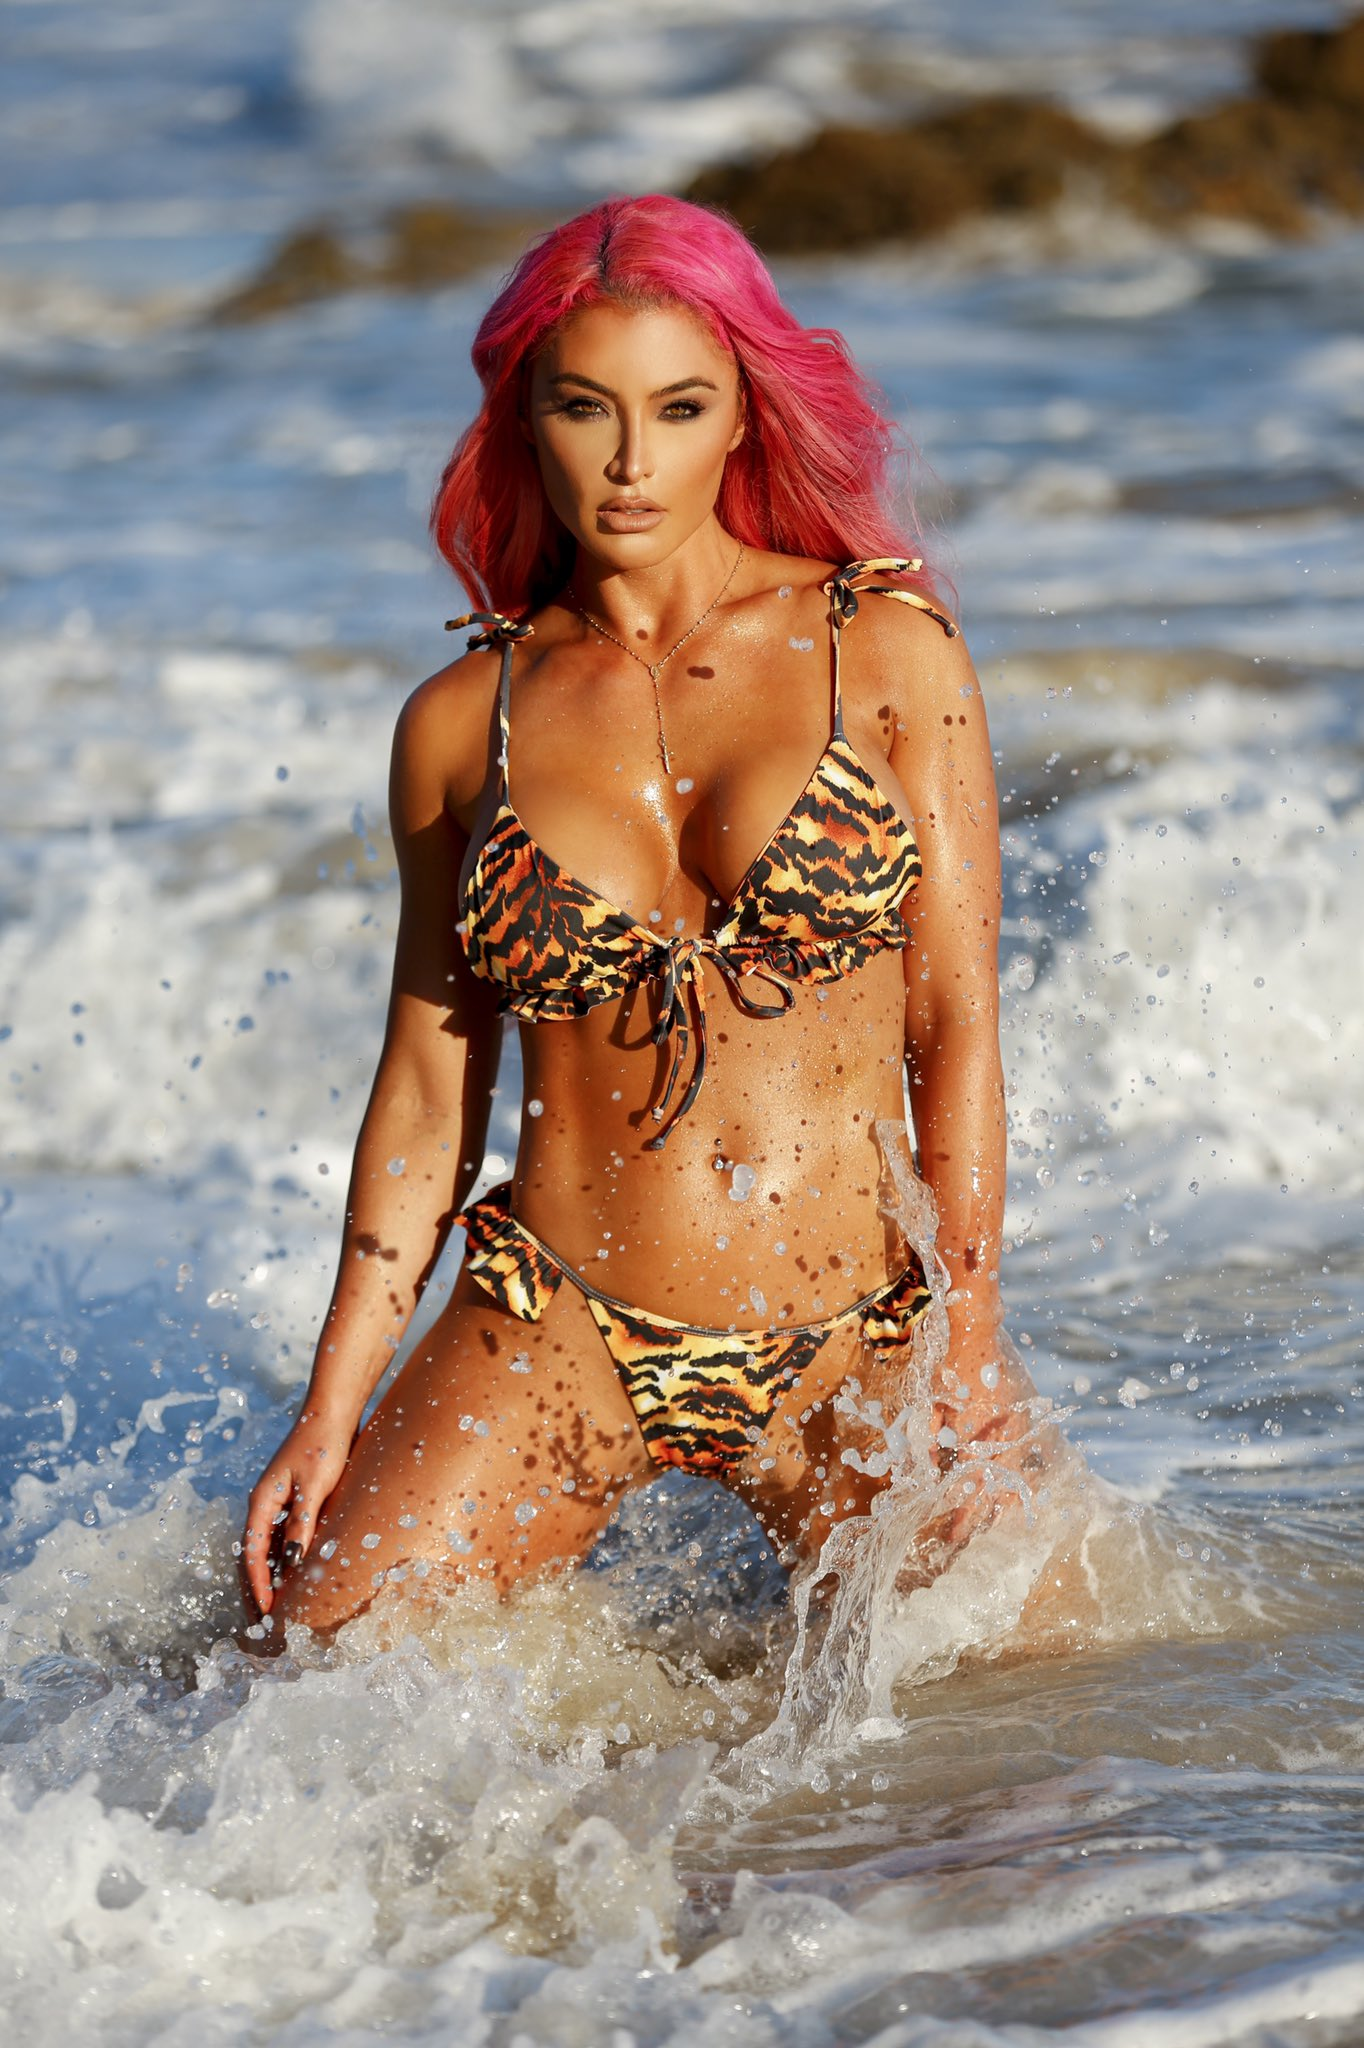 Eva Marie Wants To Inspire The WWE Universe Via Sultry Photos 1